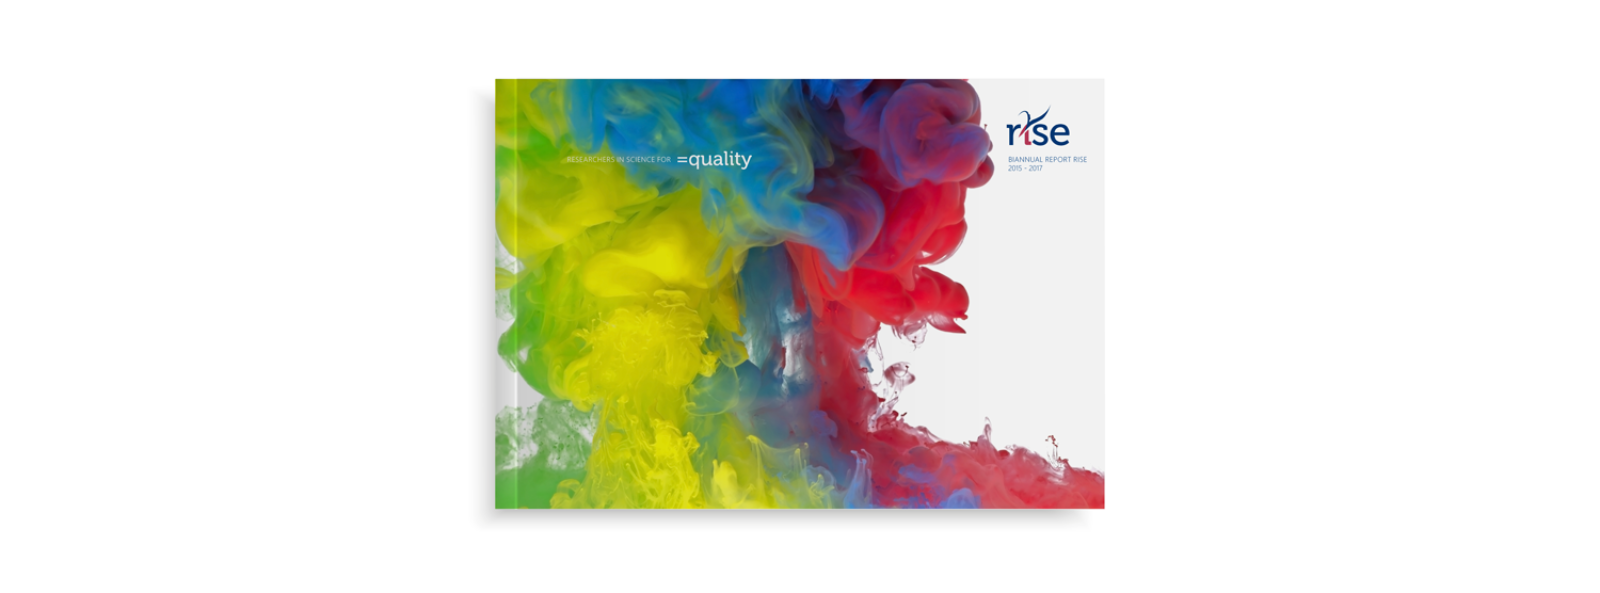 RISE-cover-2015-17